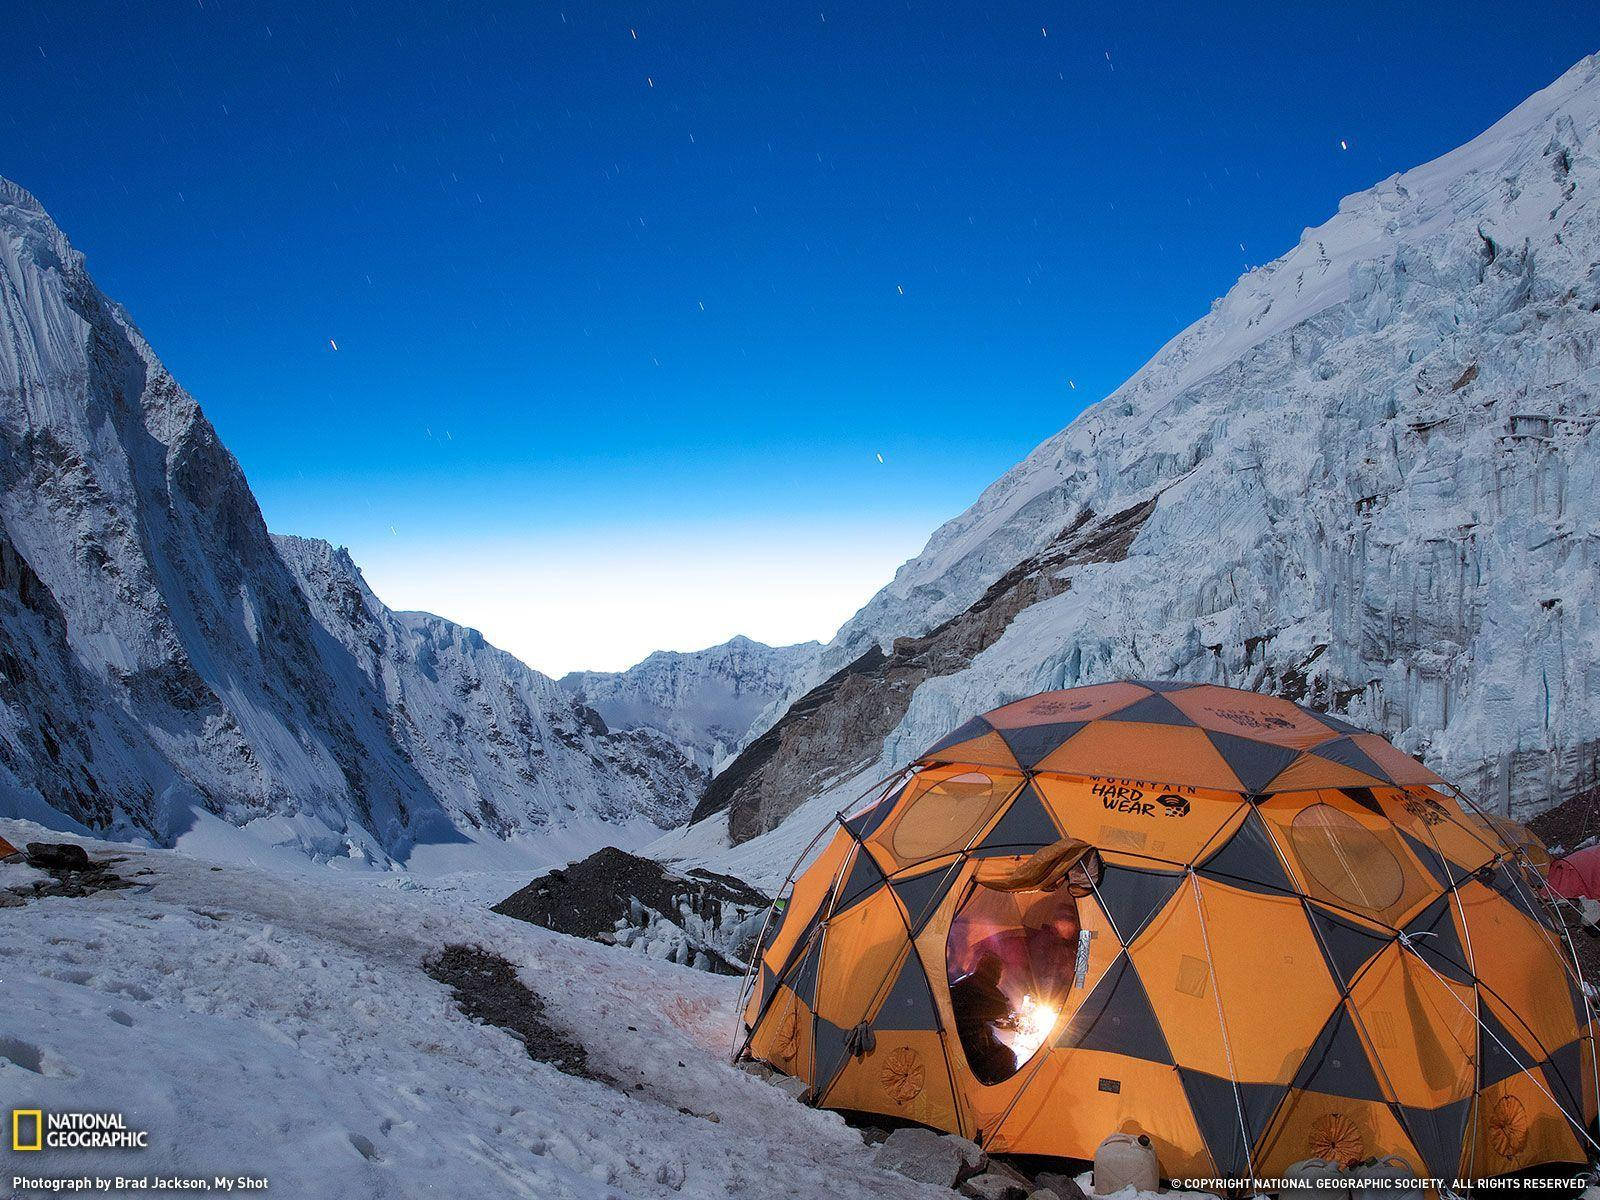 Stars Over Campsite Picture, Mount Everest Wallpaper - National ...